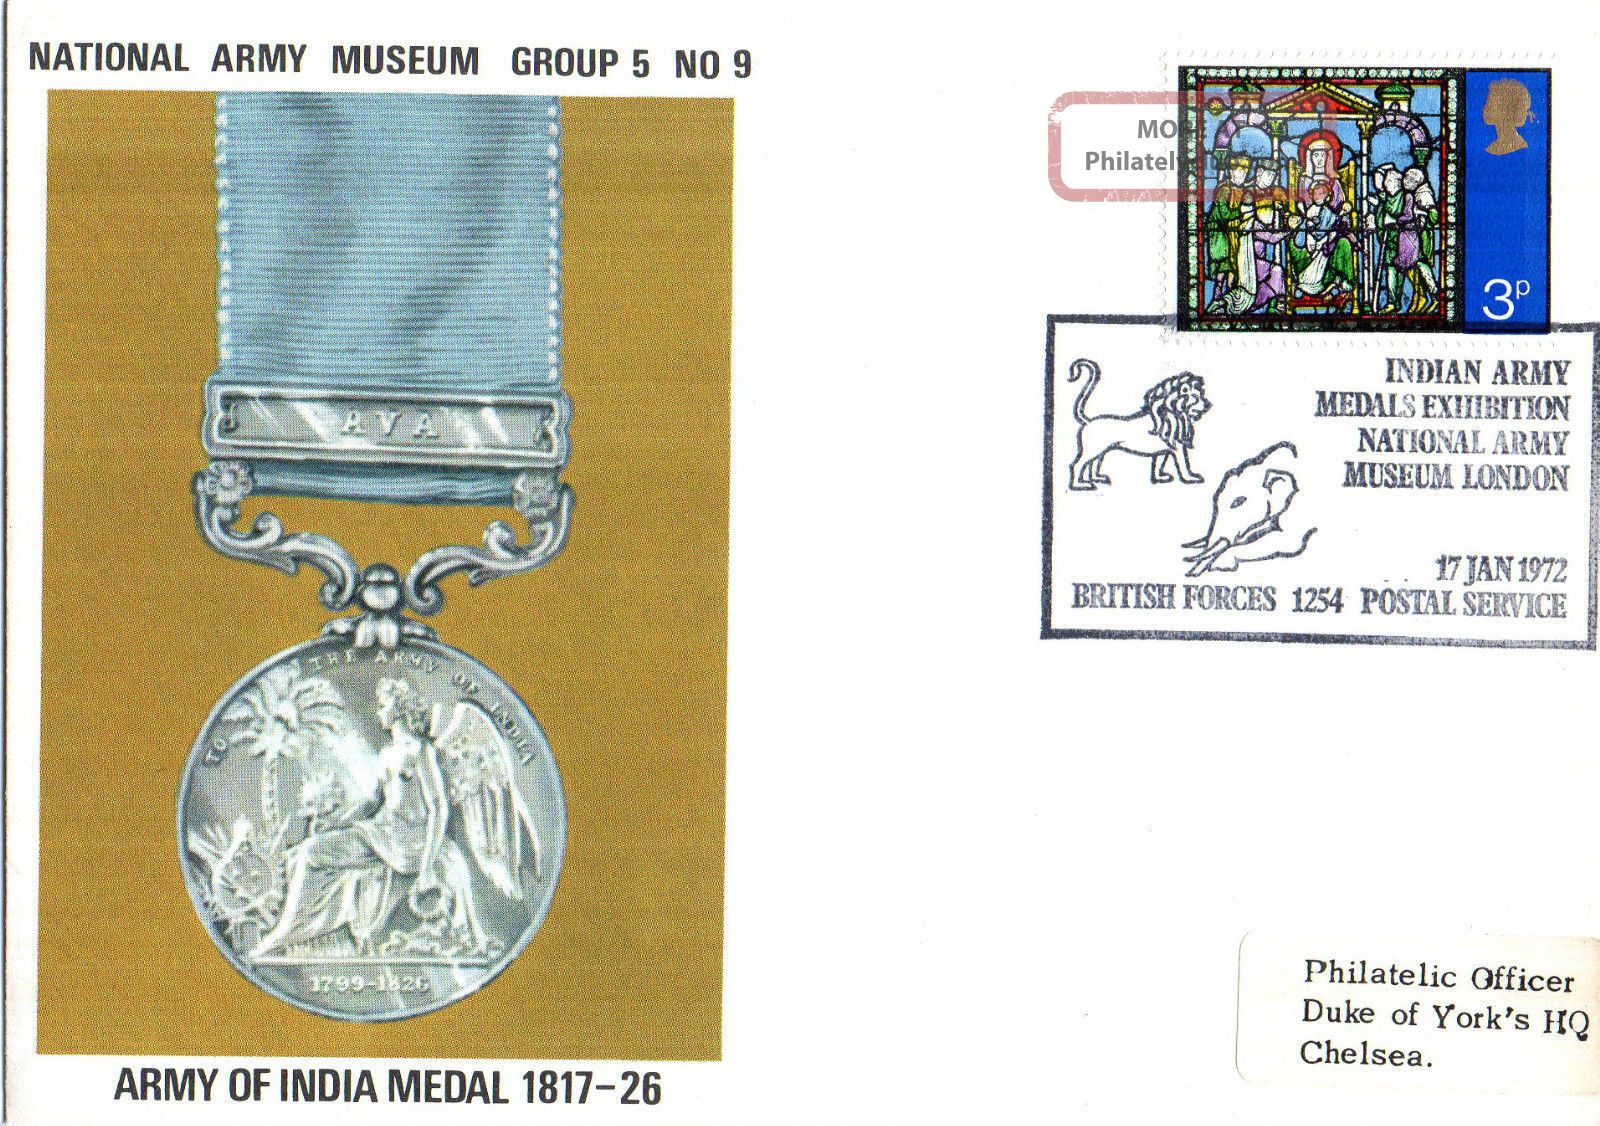 1972 Army Of Indian Medal 1817 - 26 5/9 Army Museum Commemorative Cover Shs Topical Stamps photo